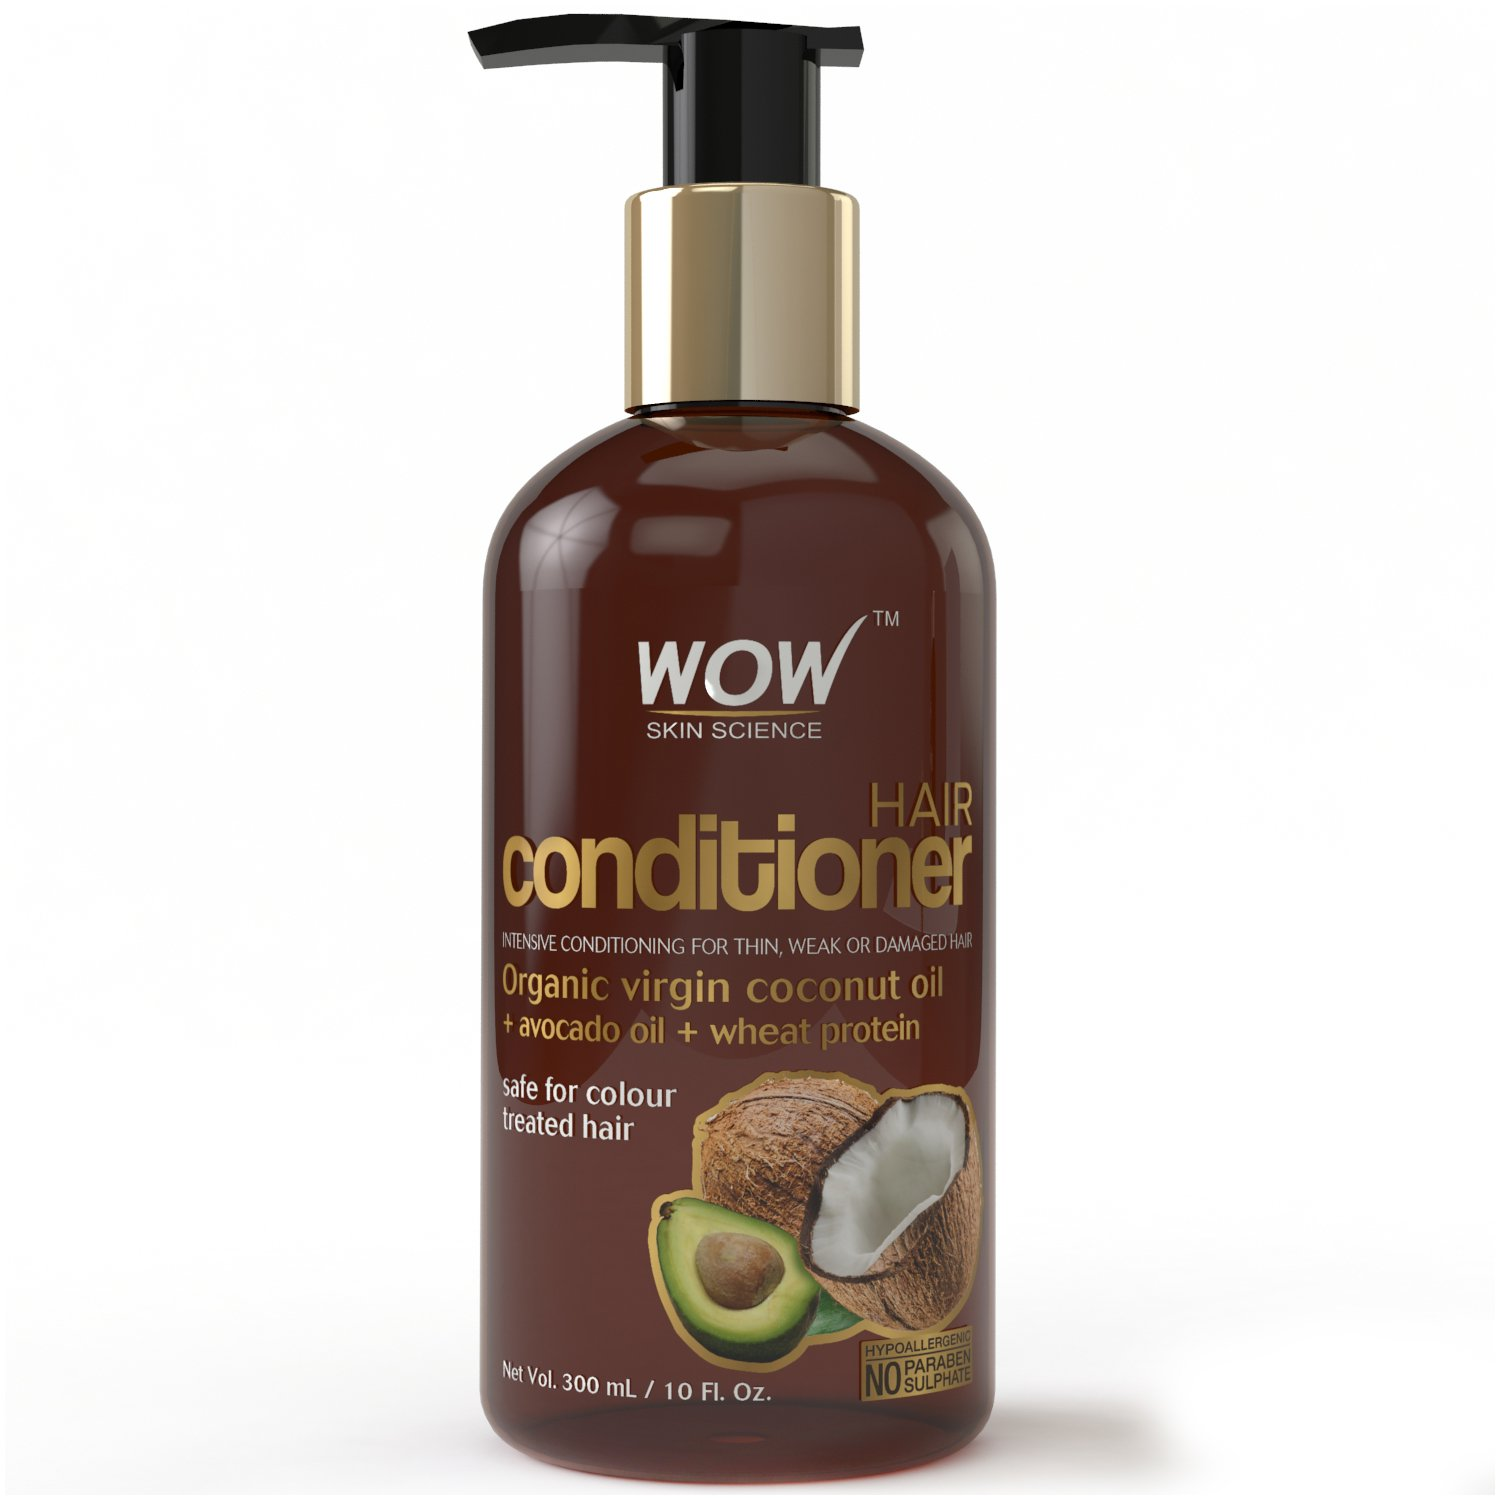 WOW Hair Conditioner - Deep Hair Conditioning for Dry Thin & Damaged Hair - Enriched with Coconut, Avocado Oil, Moroccan Argan Oil, Jojoba Oil - Vitamins B5 & E - Paraben and Sulfate Free - 10 Fl Oz